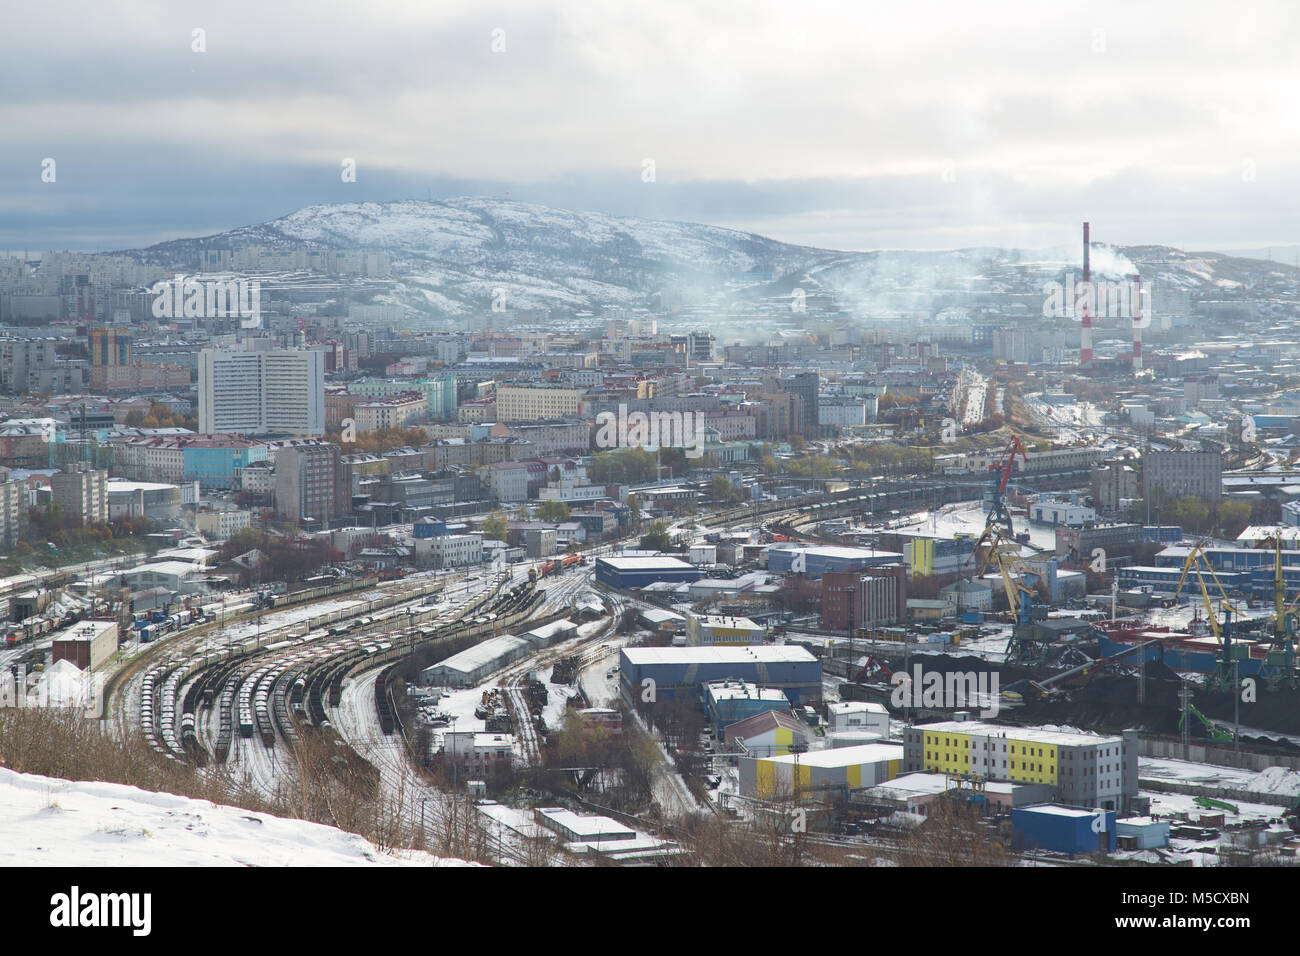 Murmansk, Russia - October 20th, 2017: Murmansk, view on a city with top. - Stock Image